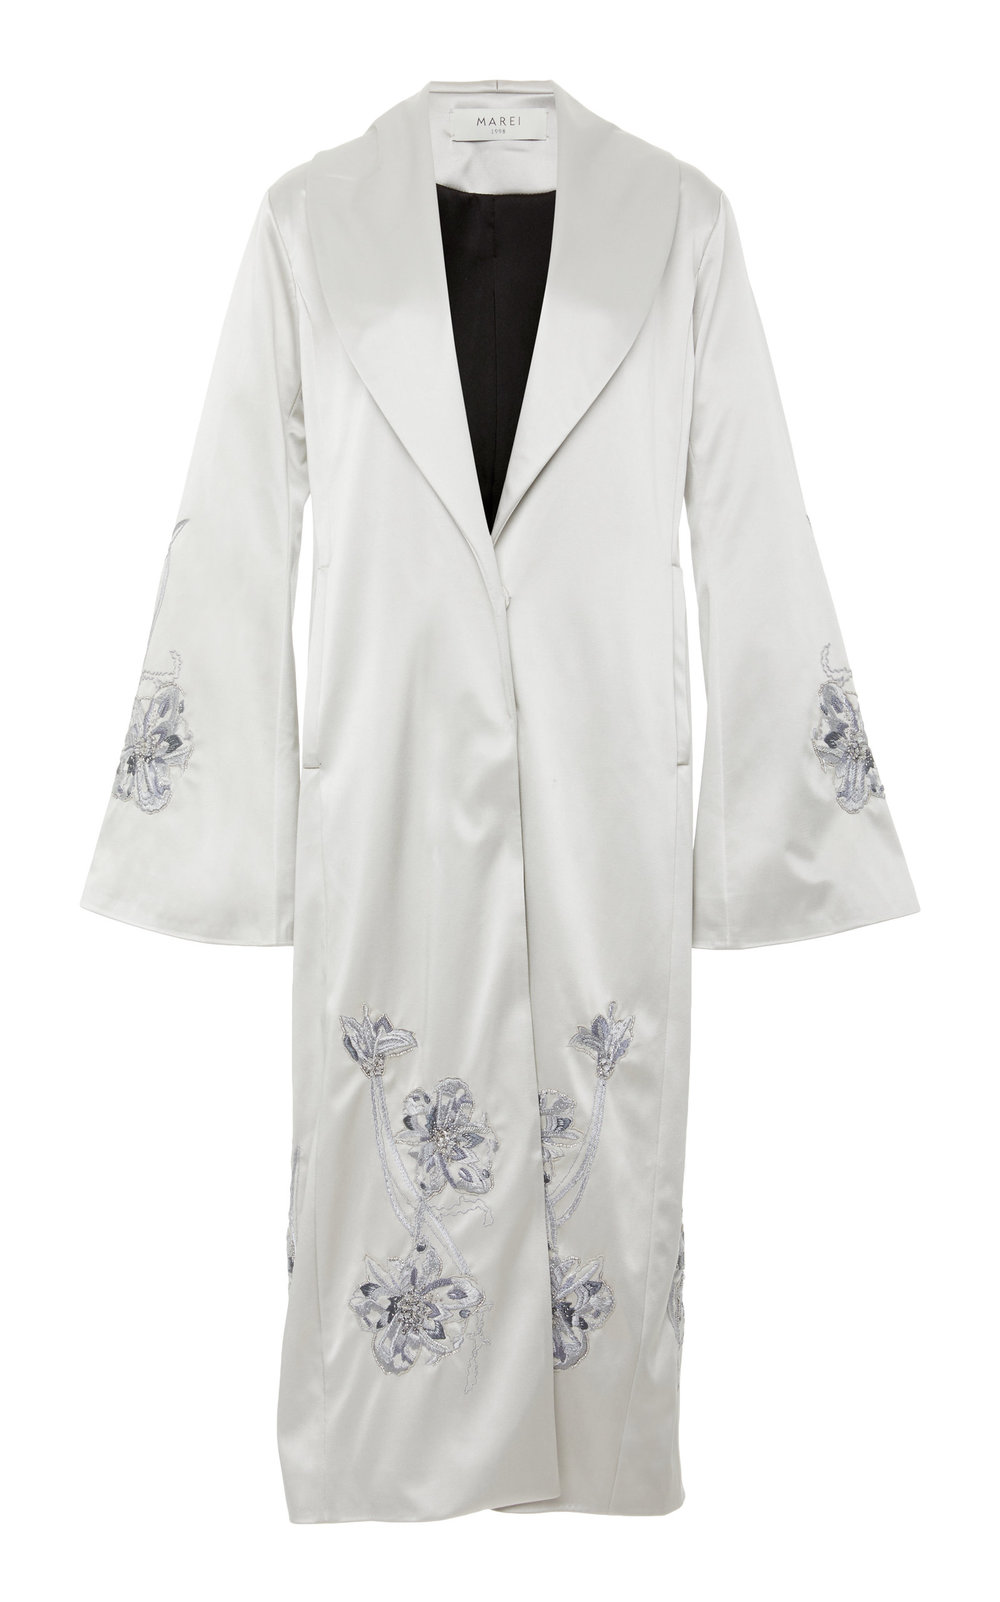 Mayflower Hand-embroidered Silk Jacket - SILVER  This delicate Silk jacket features a notched lapel collar and side pockets. A meticulous hand embroidery design adds a touch of glamour to every outfit.